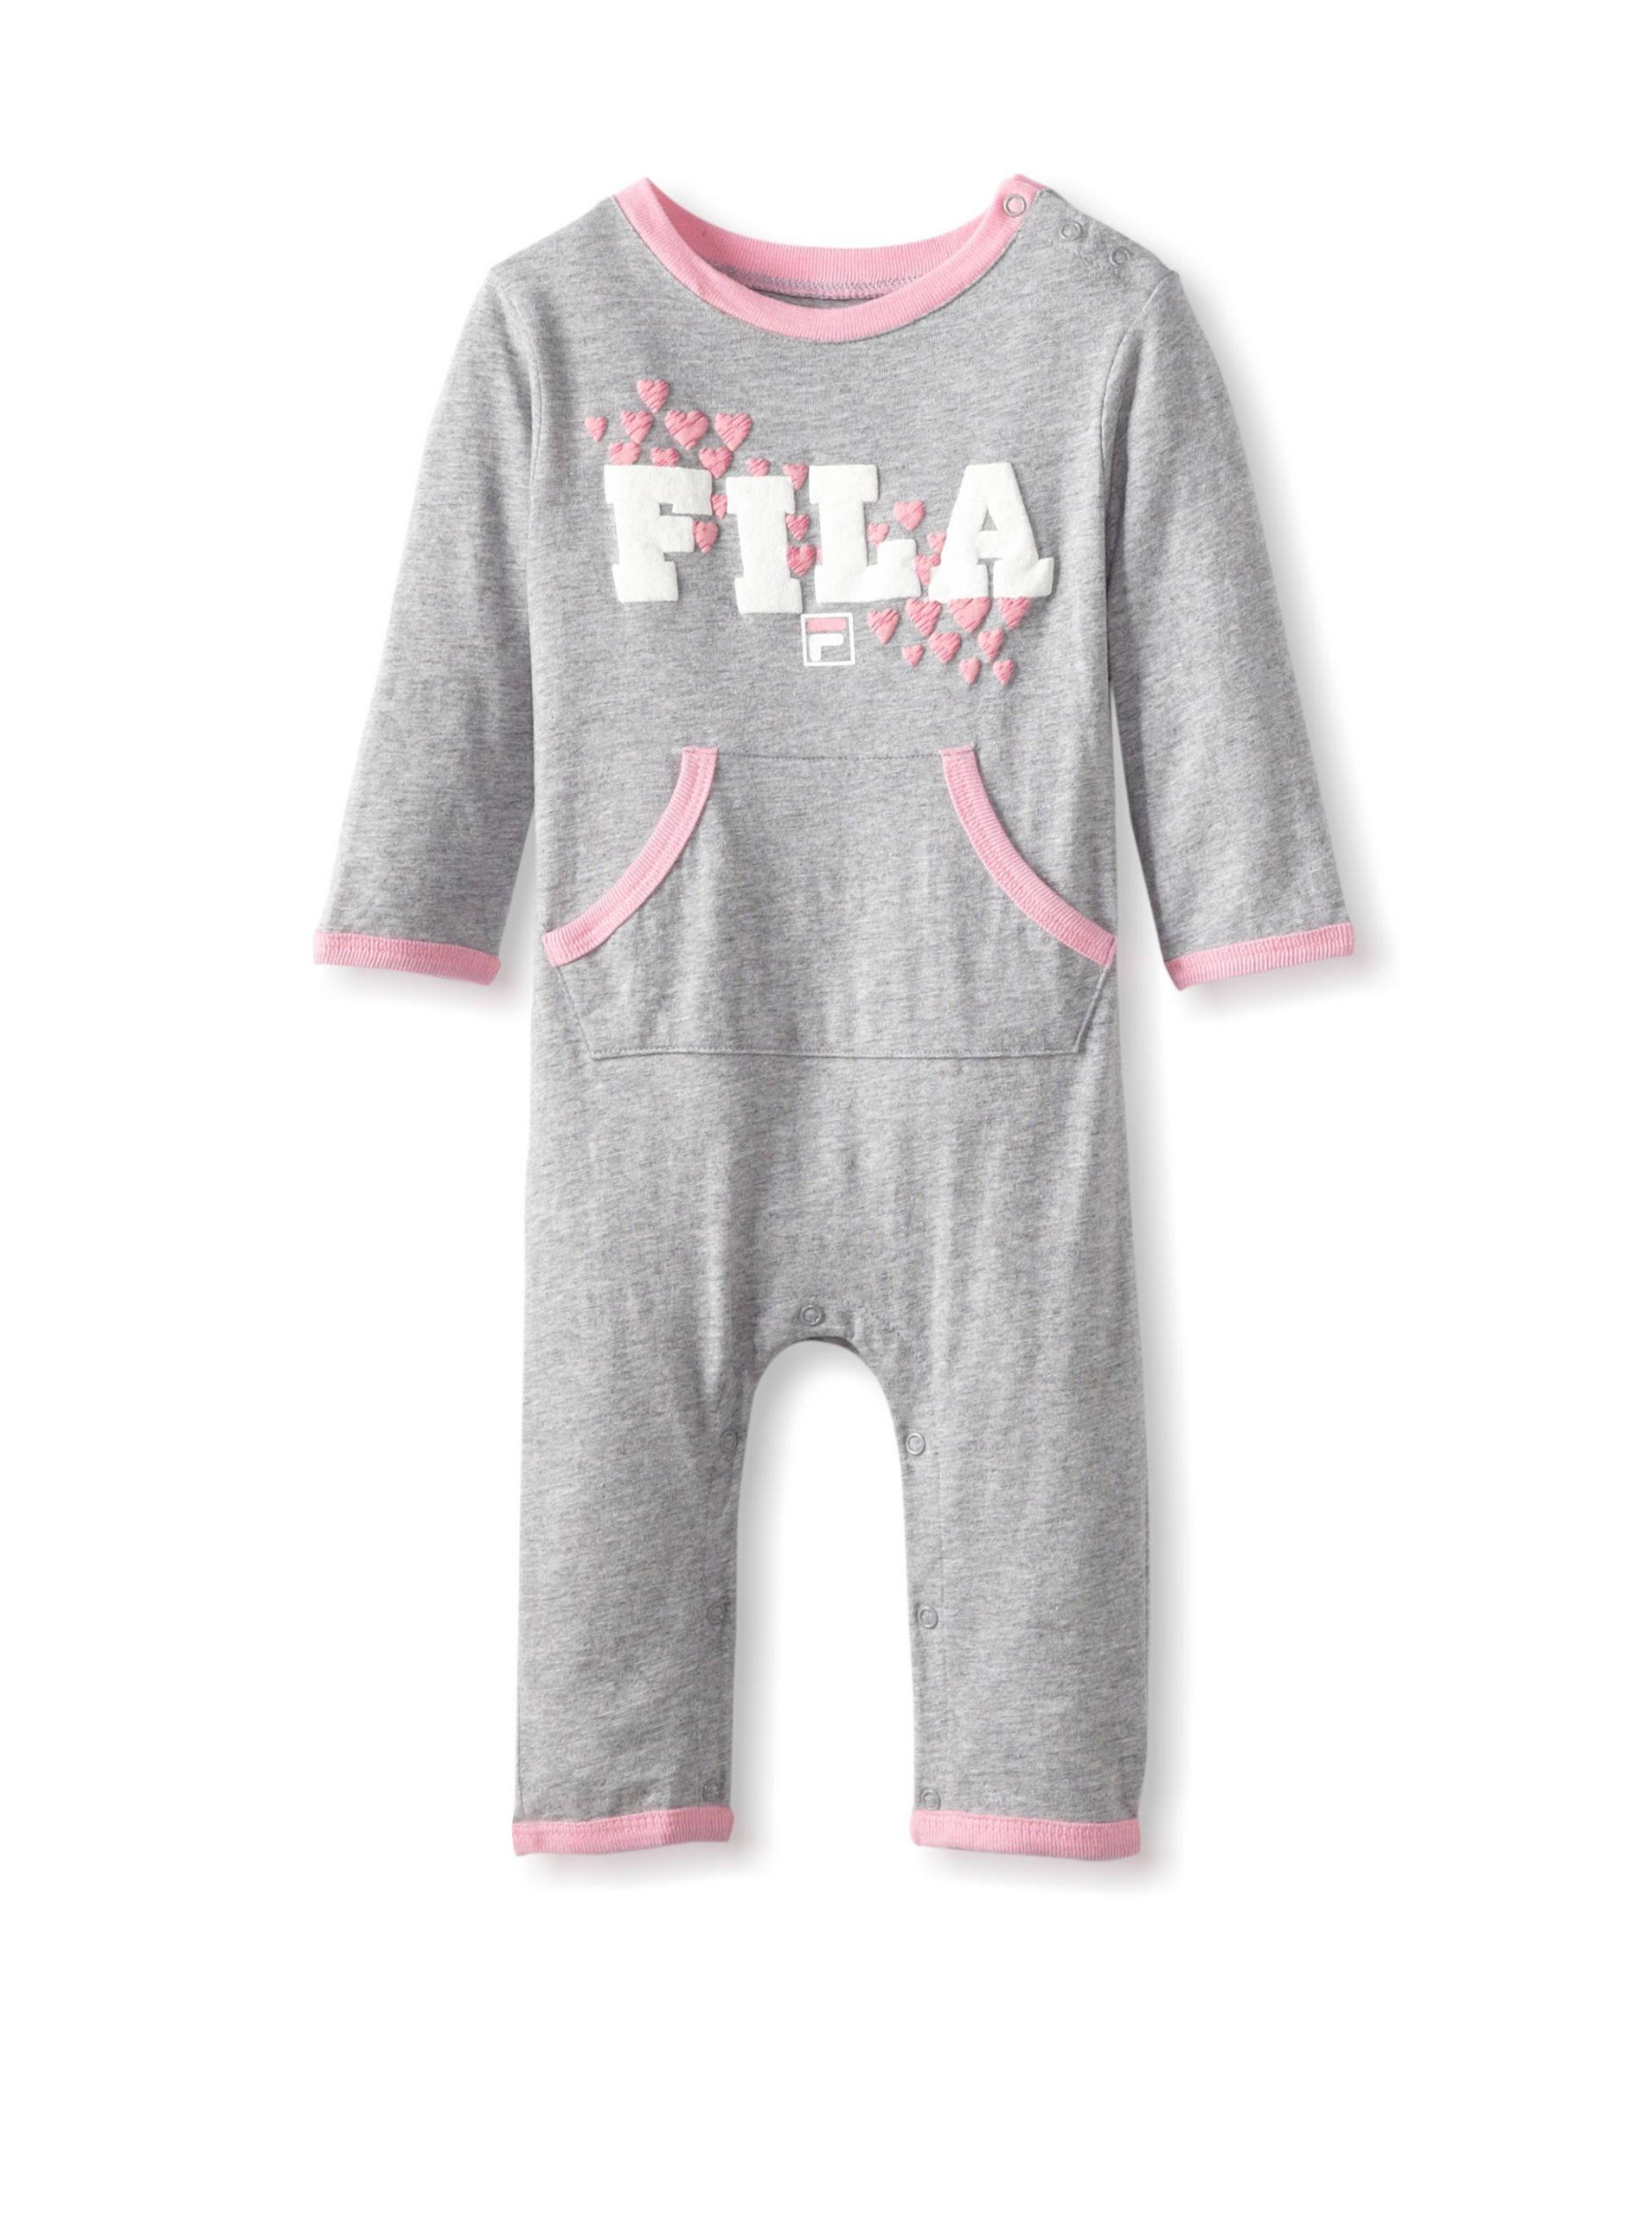 40d8ef6e945 Fila Baby Coverall (Heather Grey) Soft and lightweight knit romper with  ribbed knit trim